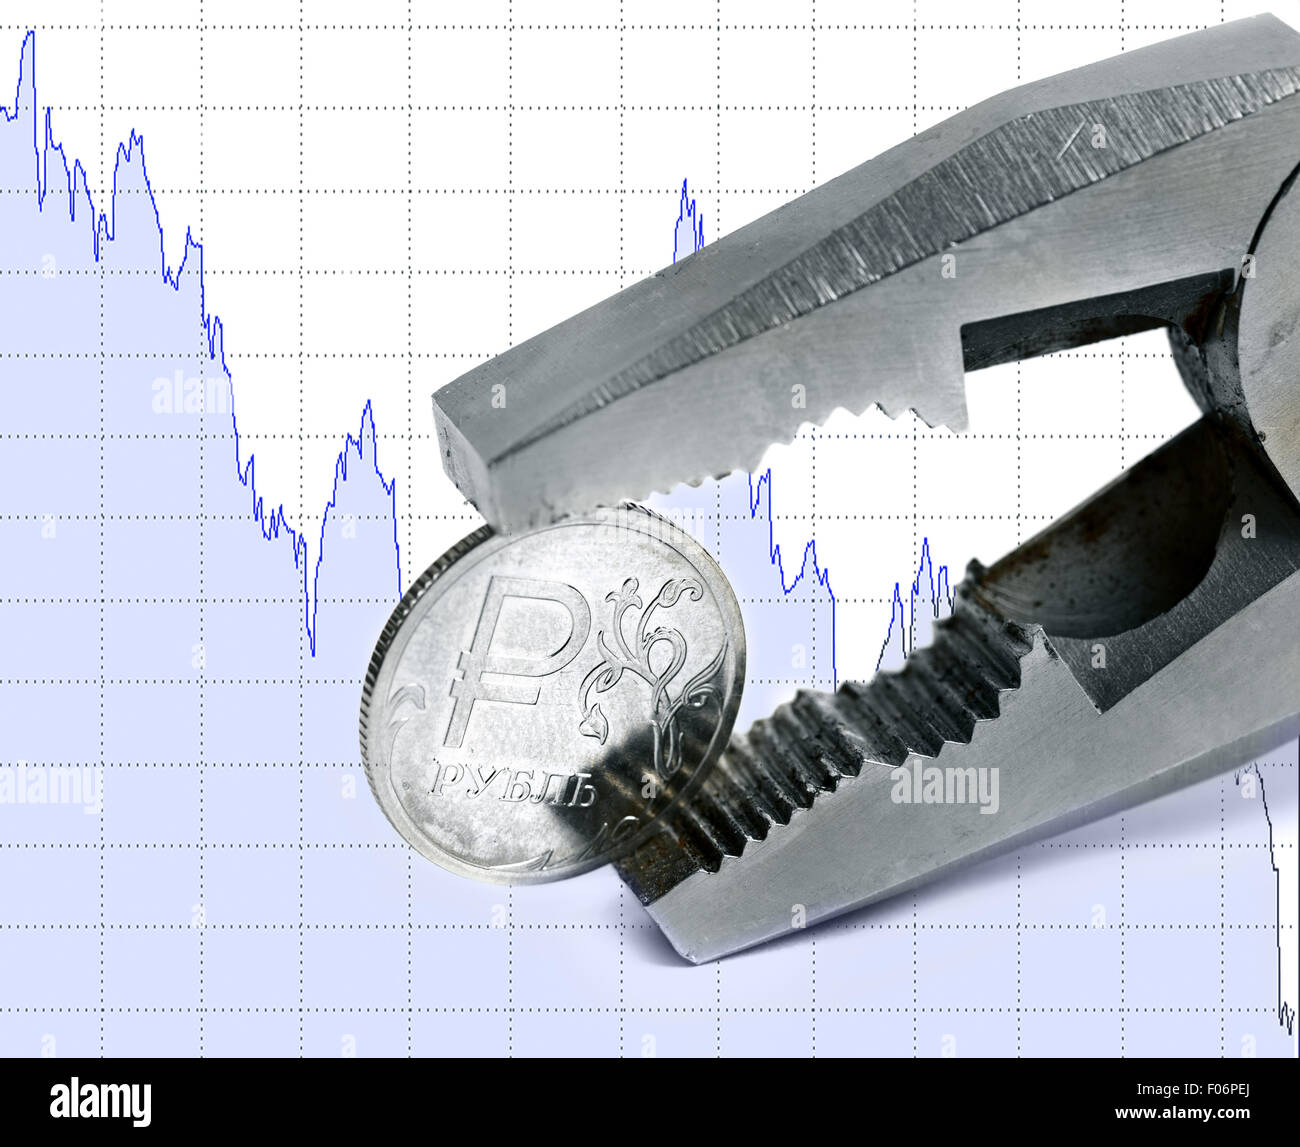 Ruble collapse crash exchange rate on international stock - Stock Image